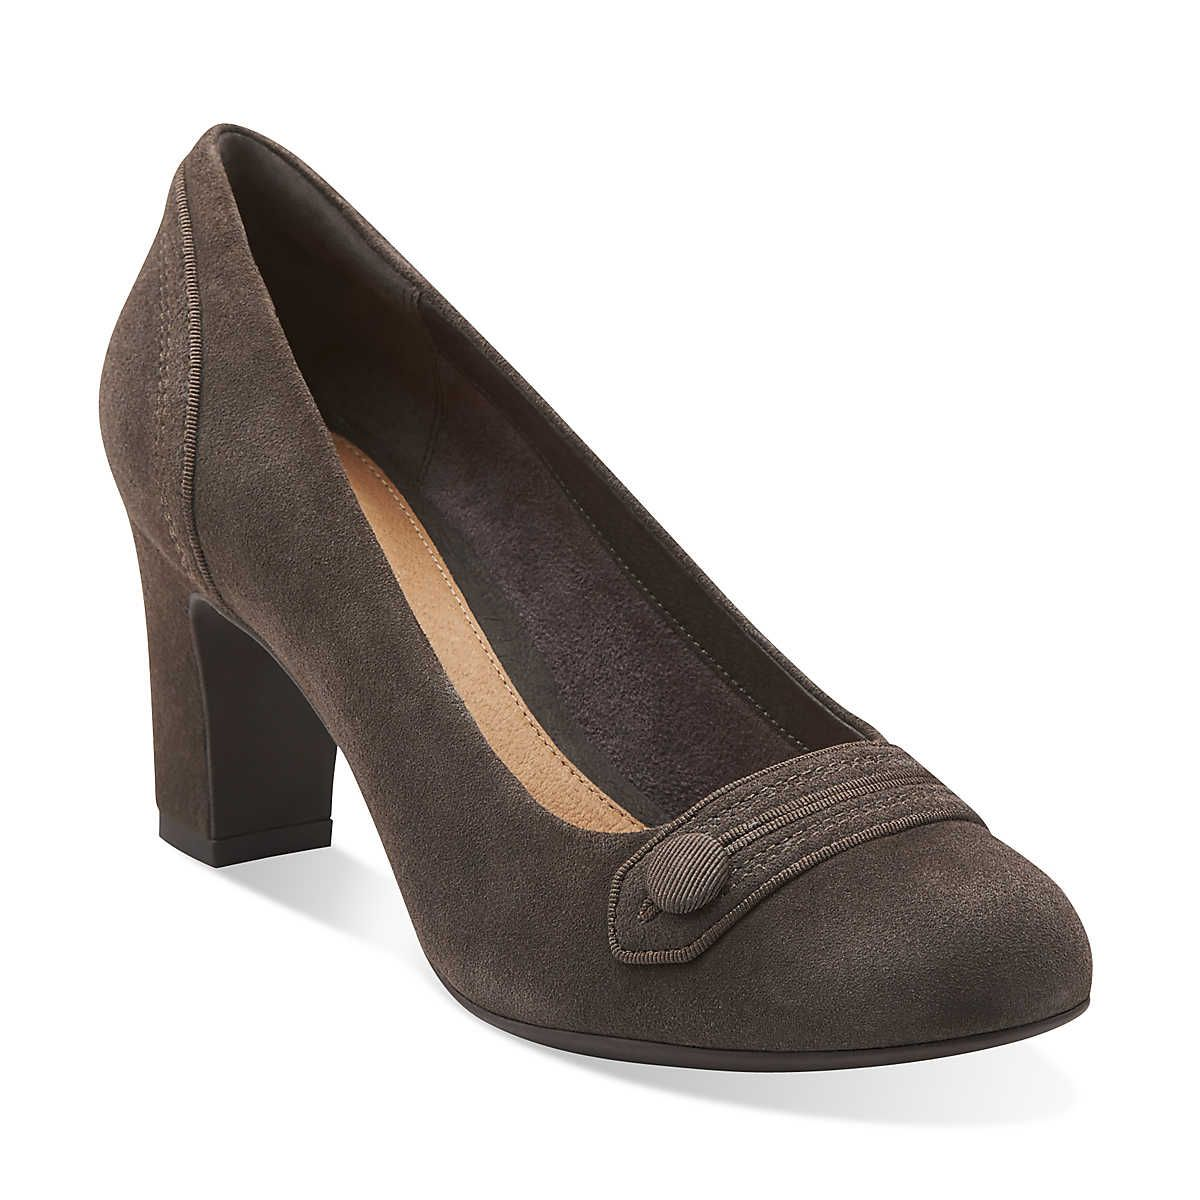 Tamryn Cider in Dark Grey Suede - Womens Shoes from Clarks